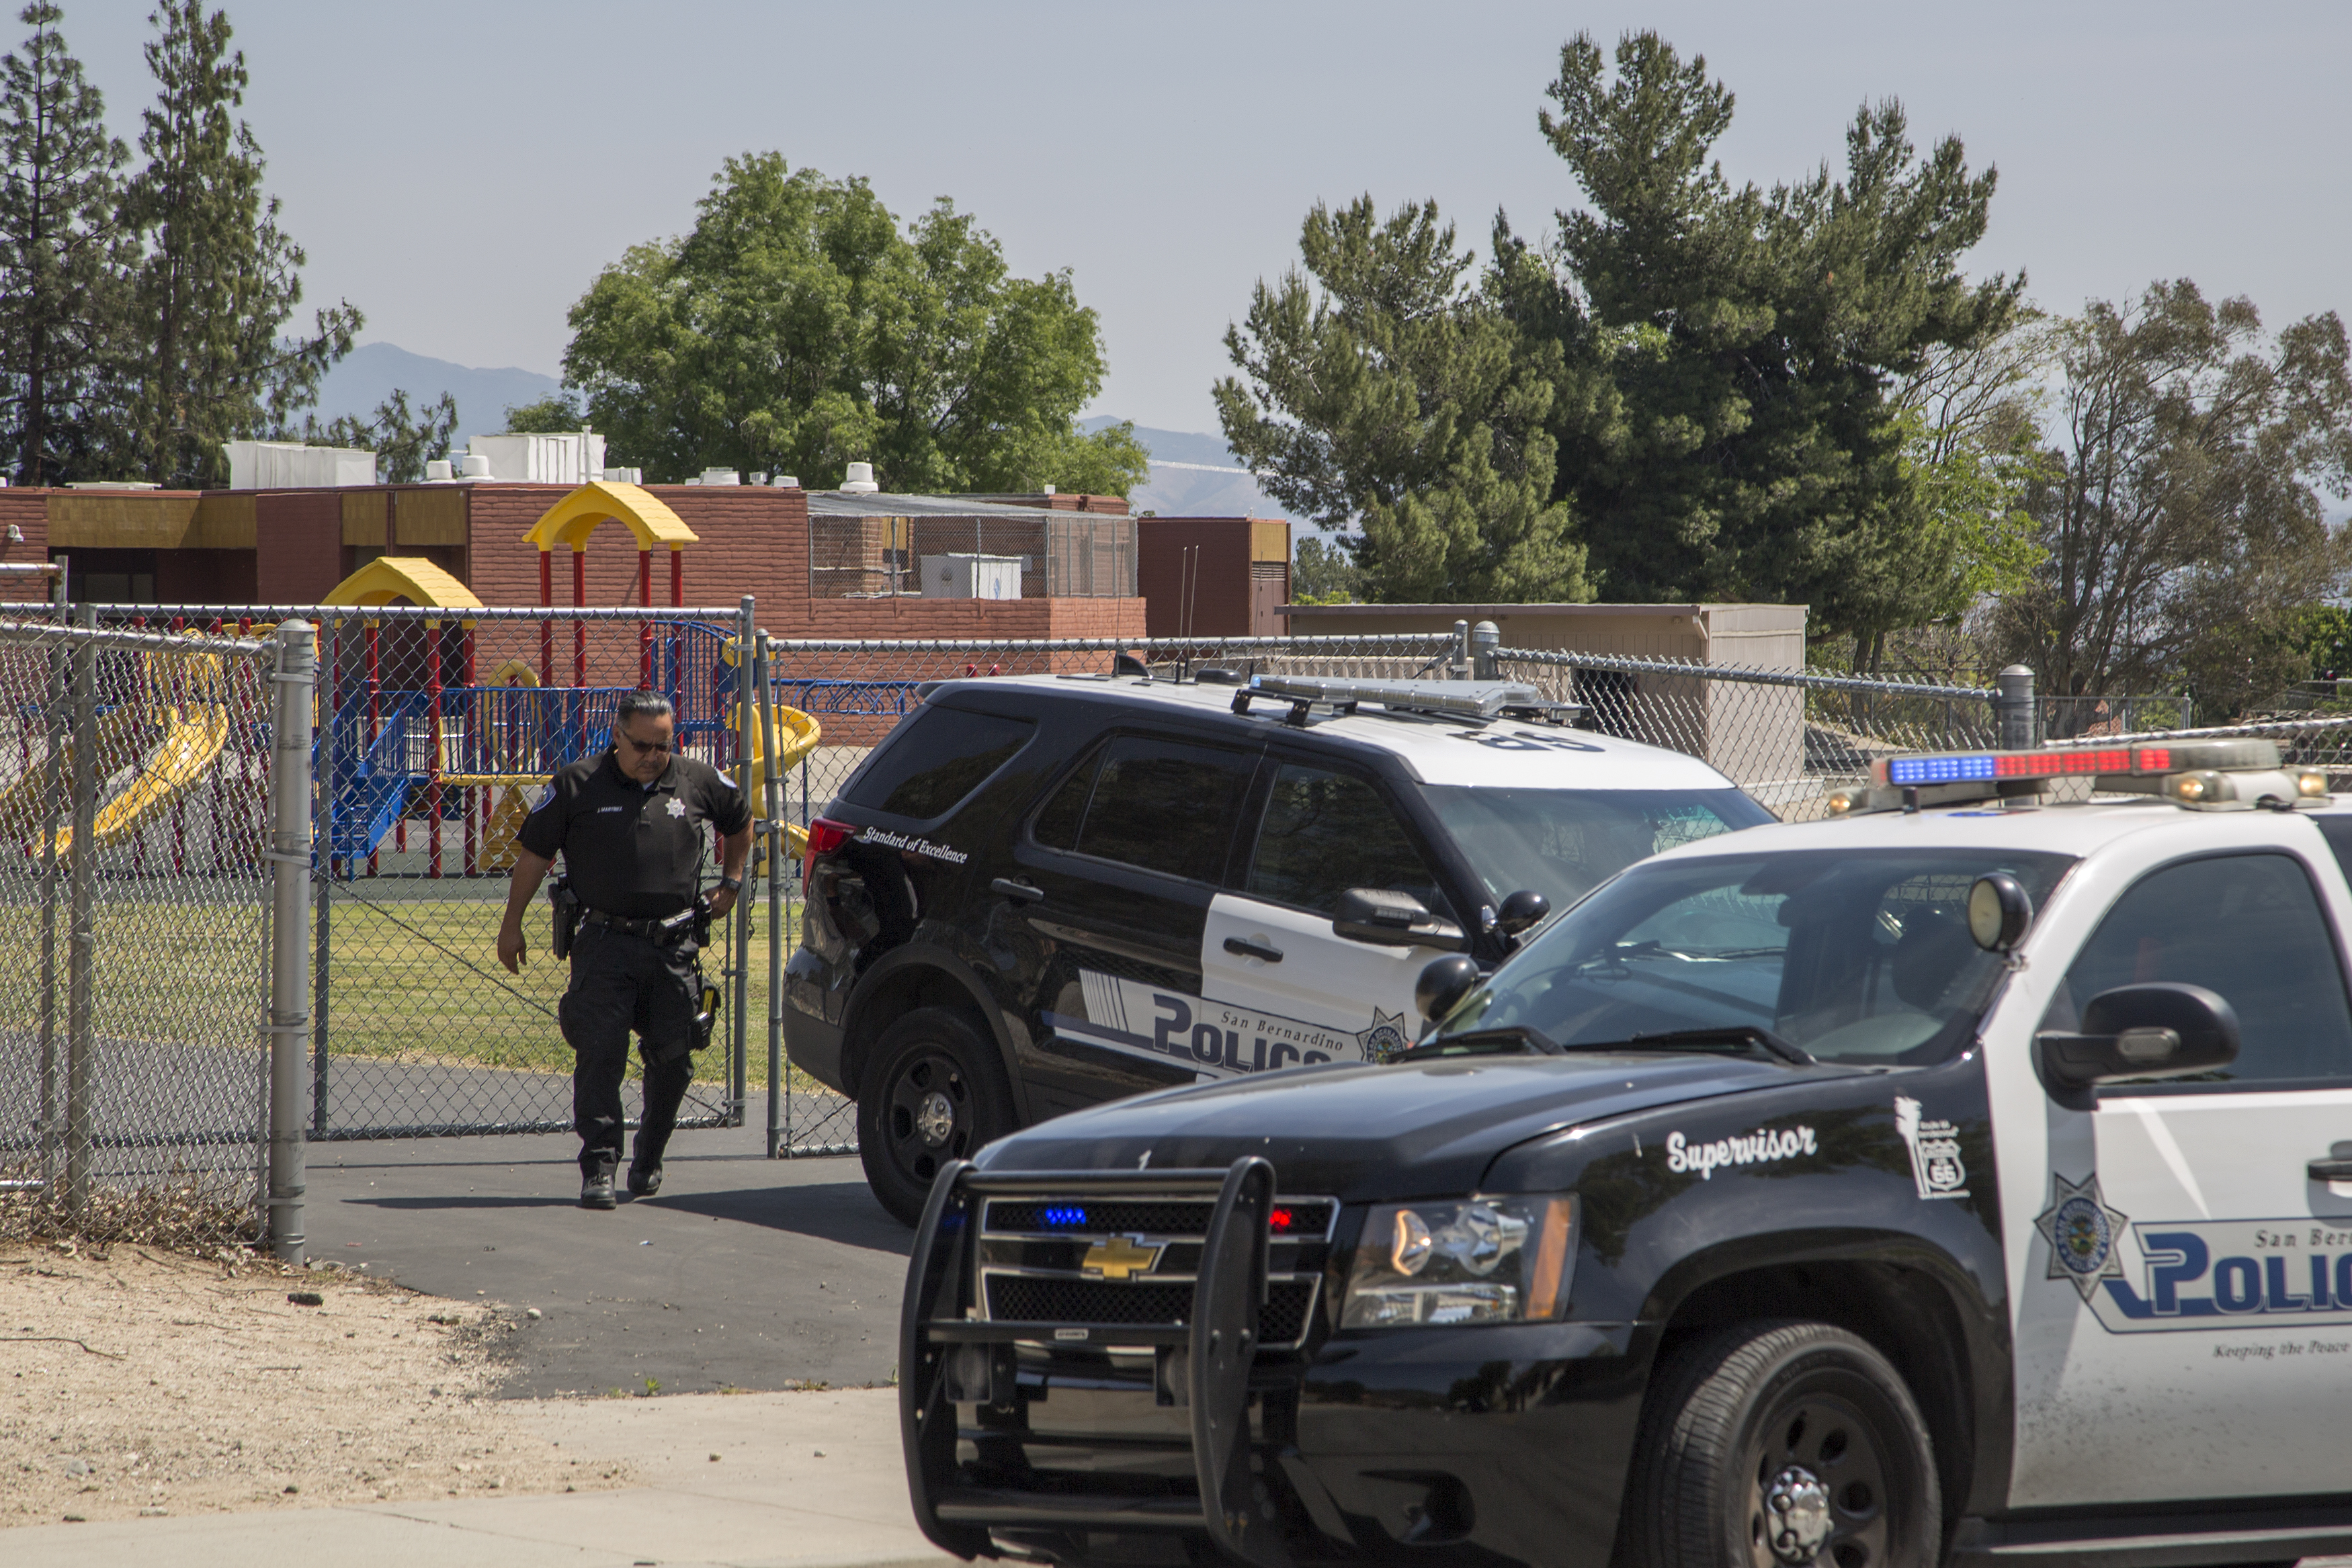 Police officers stand guard at North Park Elementary School following a shooting on campus on April 10, 2017 in San Bernardino, Calif. Two people died, including the suspected shooter, and two children were wounded in the apparent murder-suicide attack. (Getty Images)